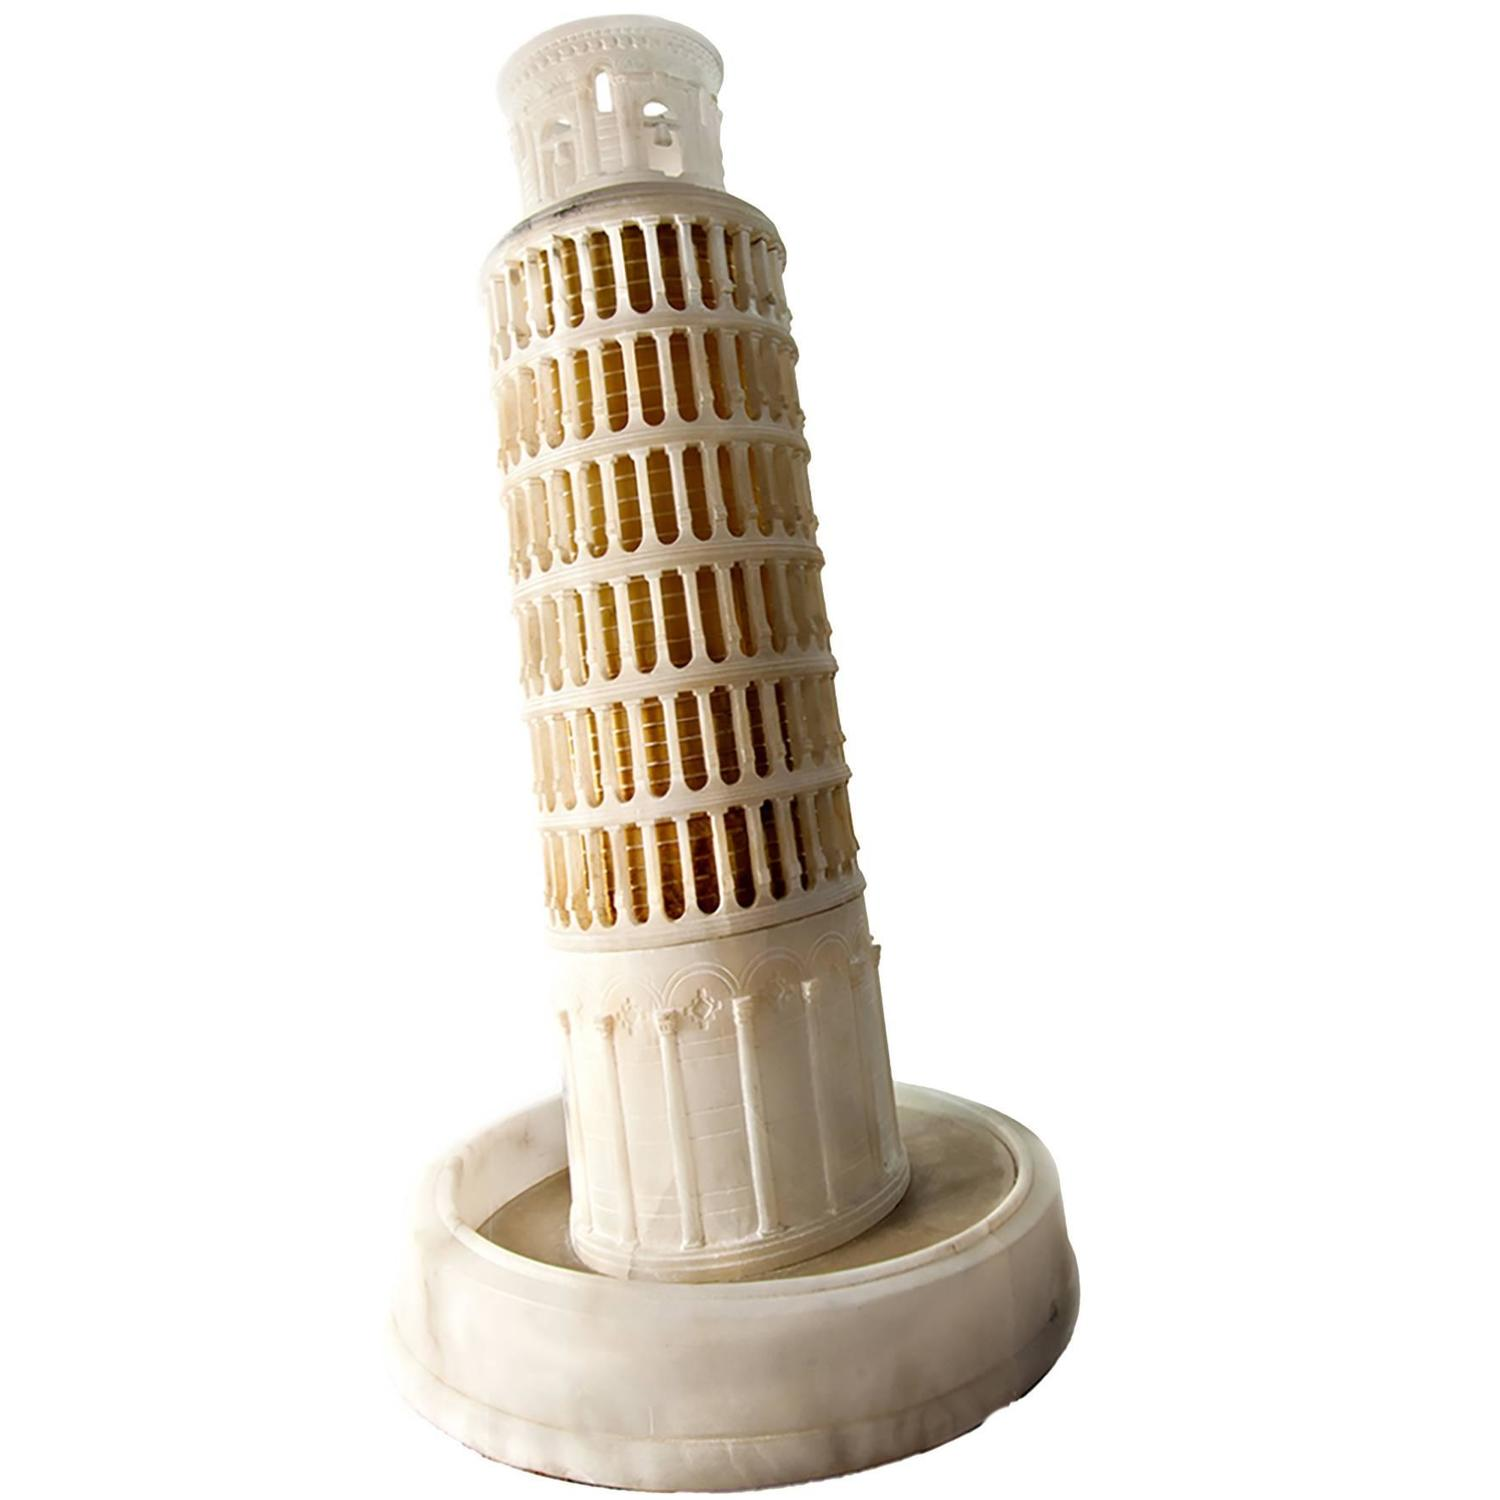 how to make a cardboard leaning tower of pisa